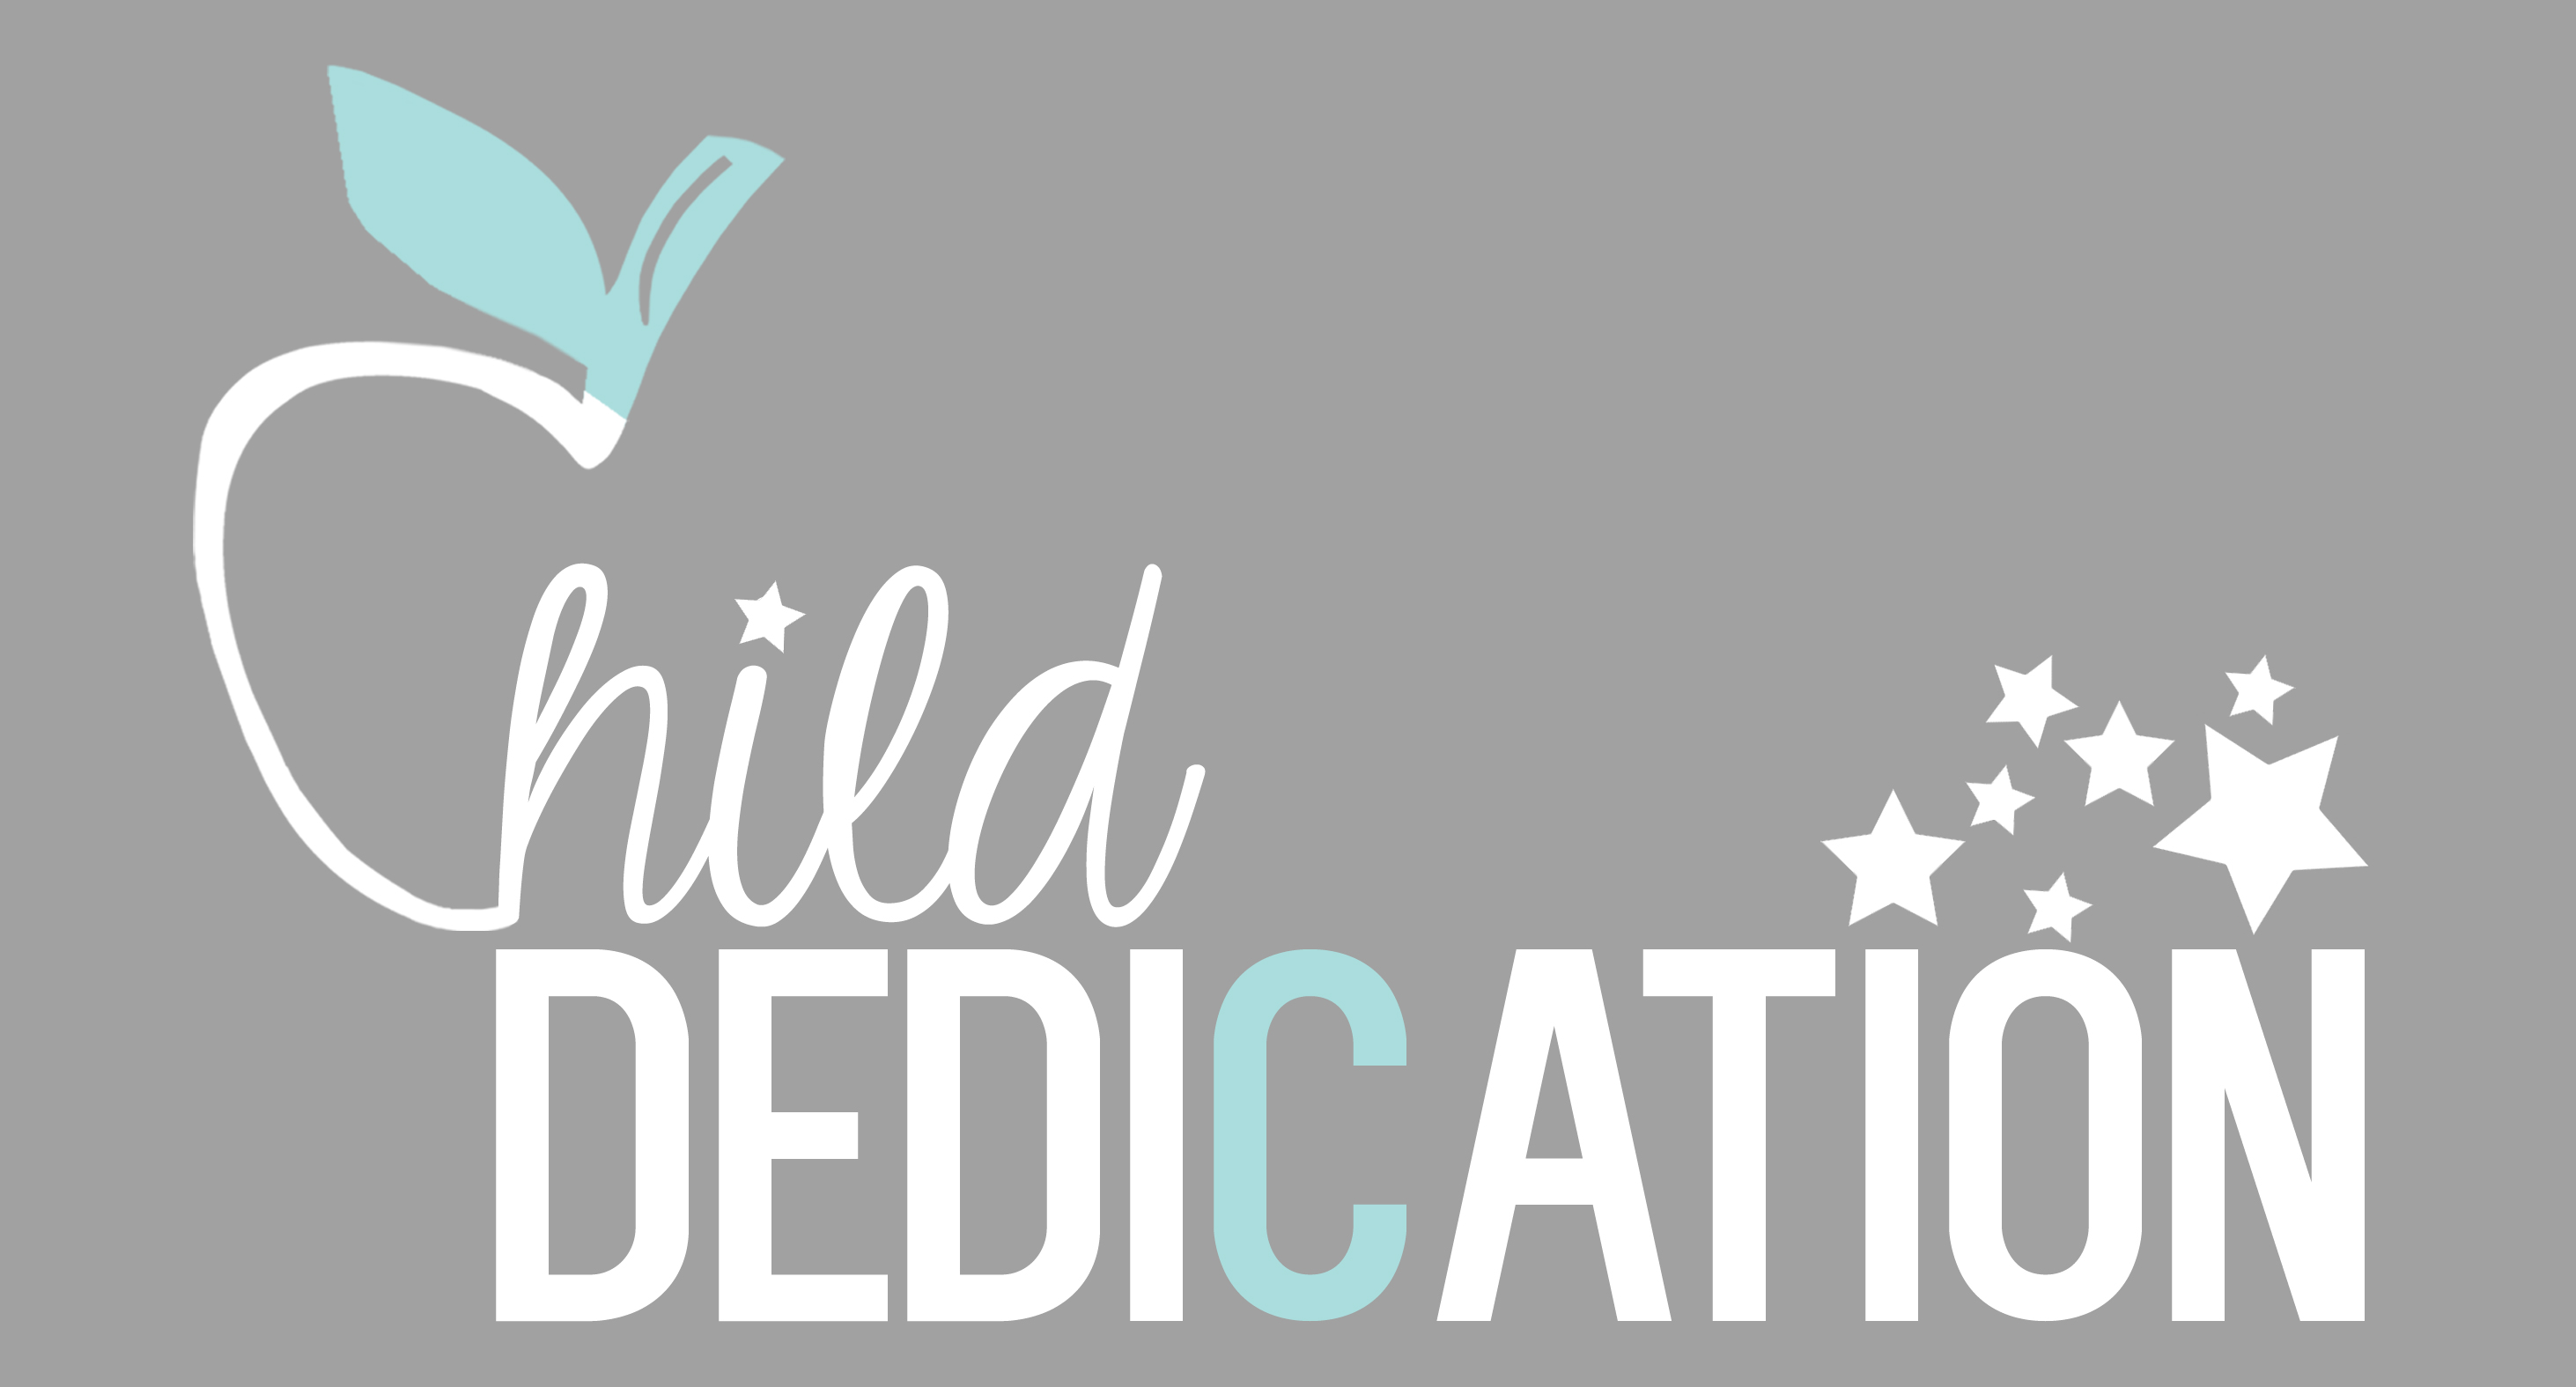 Child dedication logo